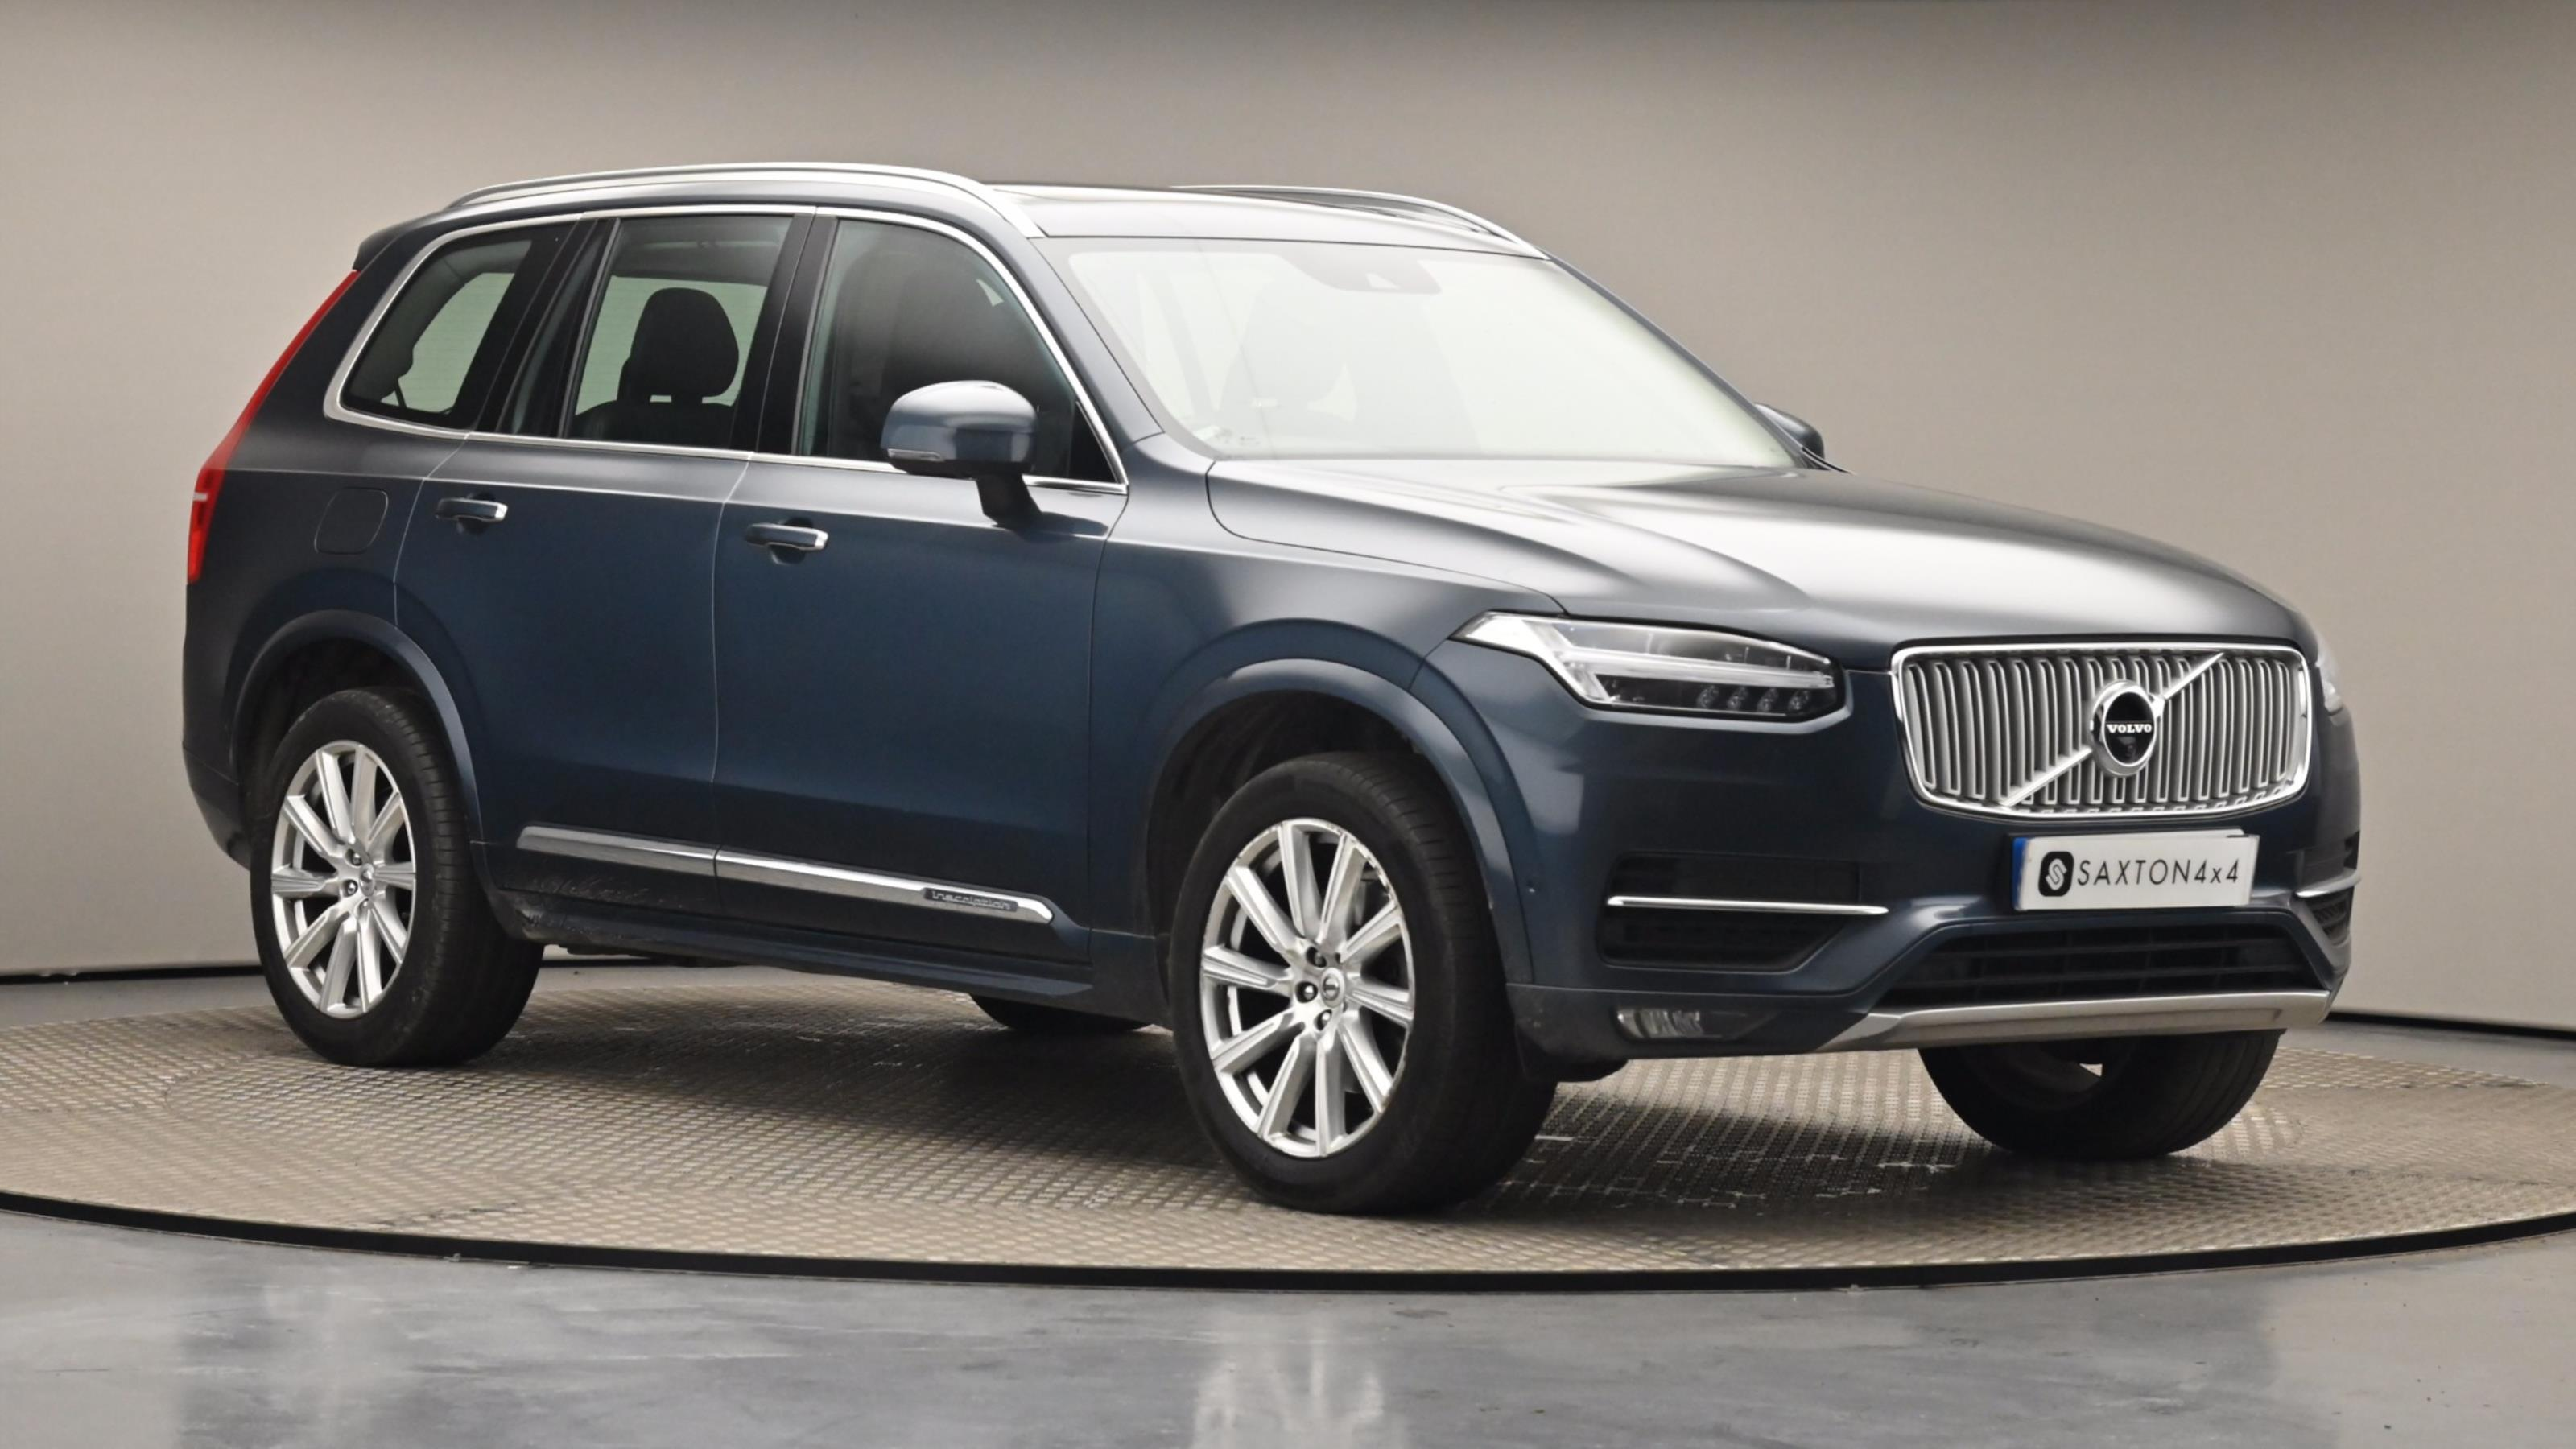 Used 2017 Volvo XC90 2.0 D5 PowerPulse Inscription Pro 5dr AWD G tronic BLUE at Saxton4x4